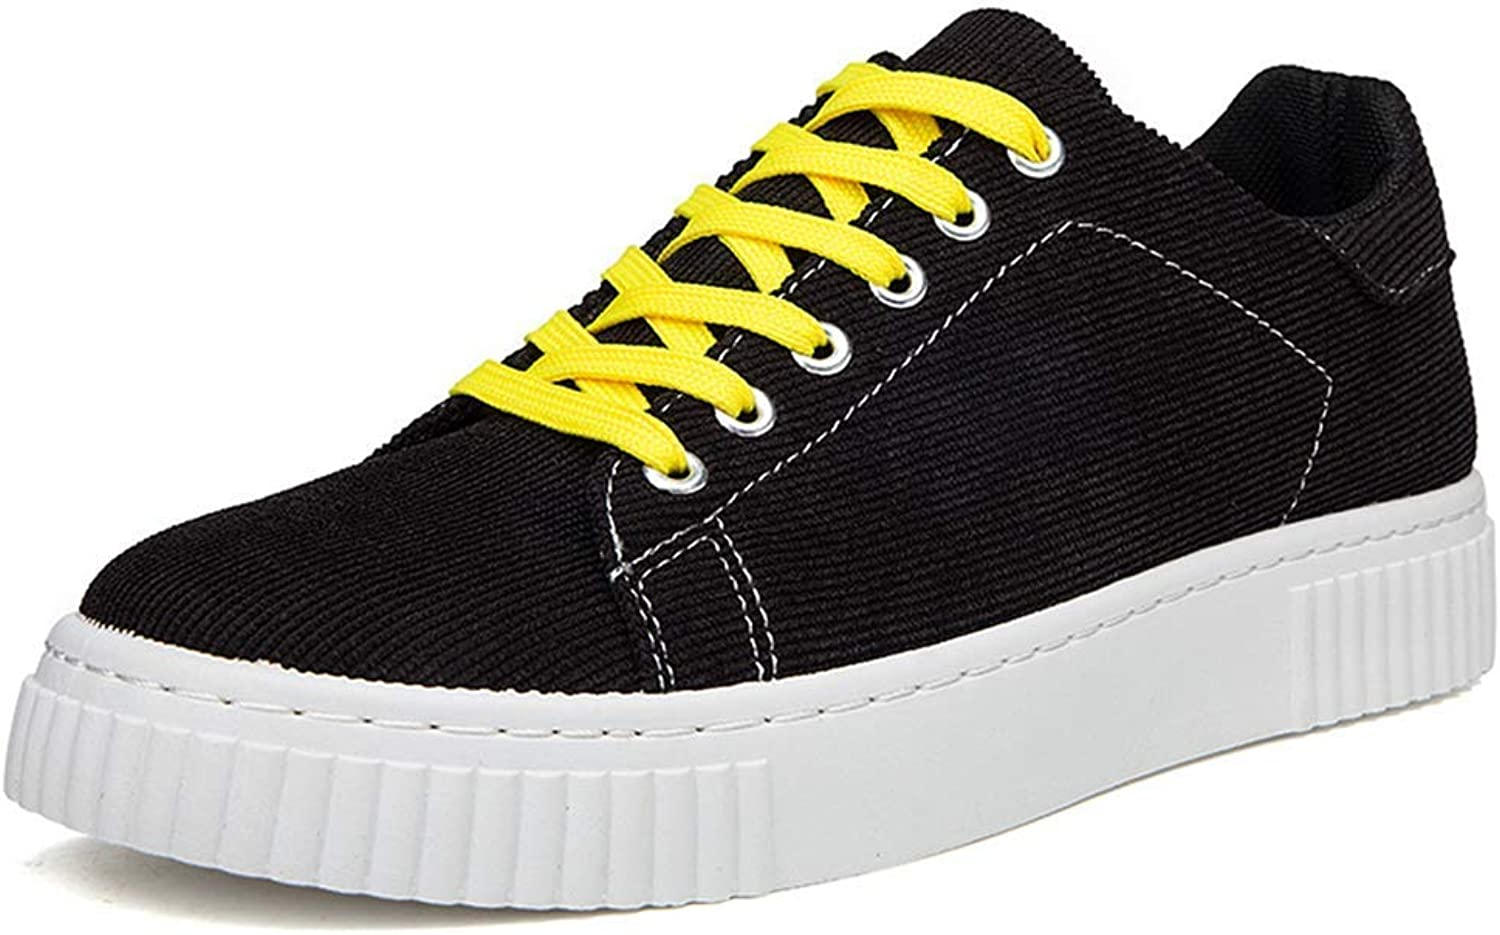 ZHRUI Men Canvas shoes Round Toe Shallow Sewing Man Casual Soft Fashion Sneakers (color   Black, Size   9.5=44 EU)